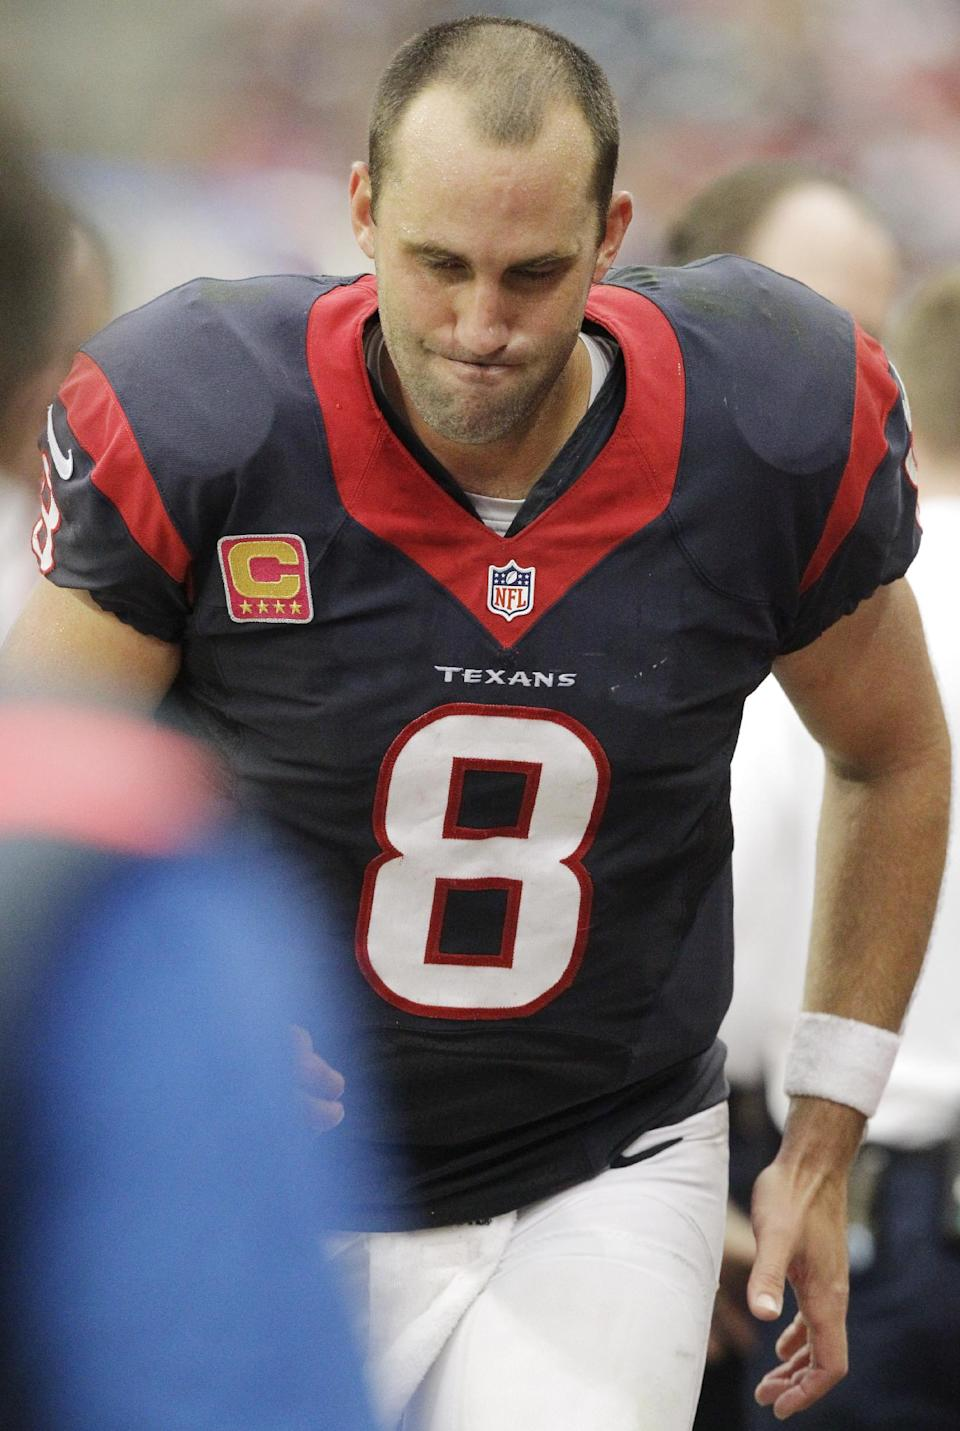 Mistakes have put Texans on 4-game skid